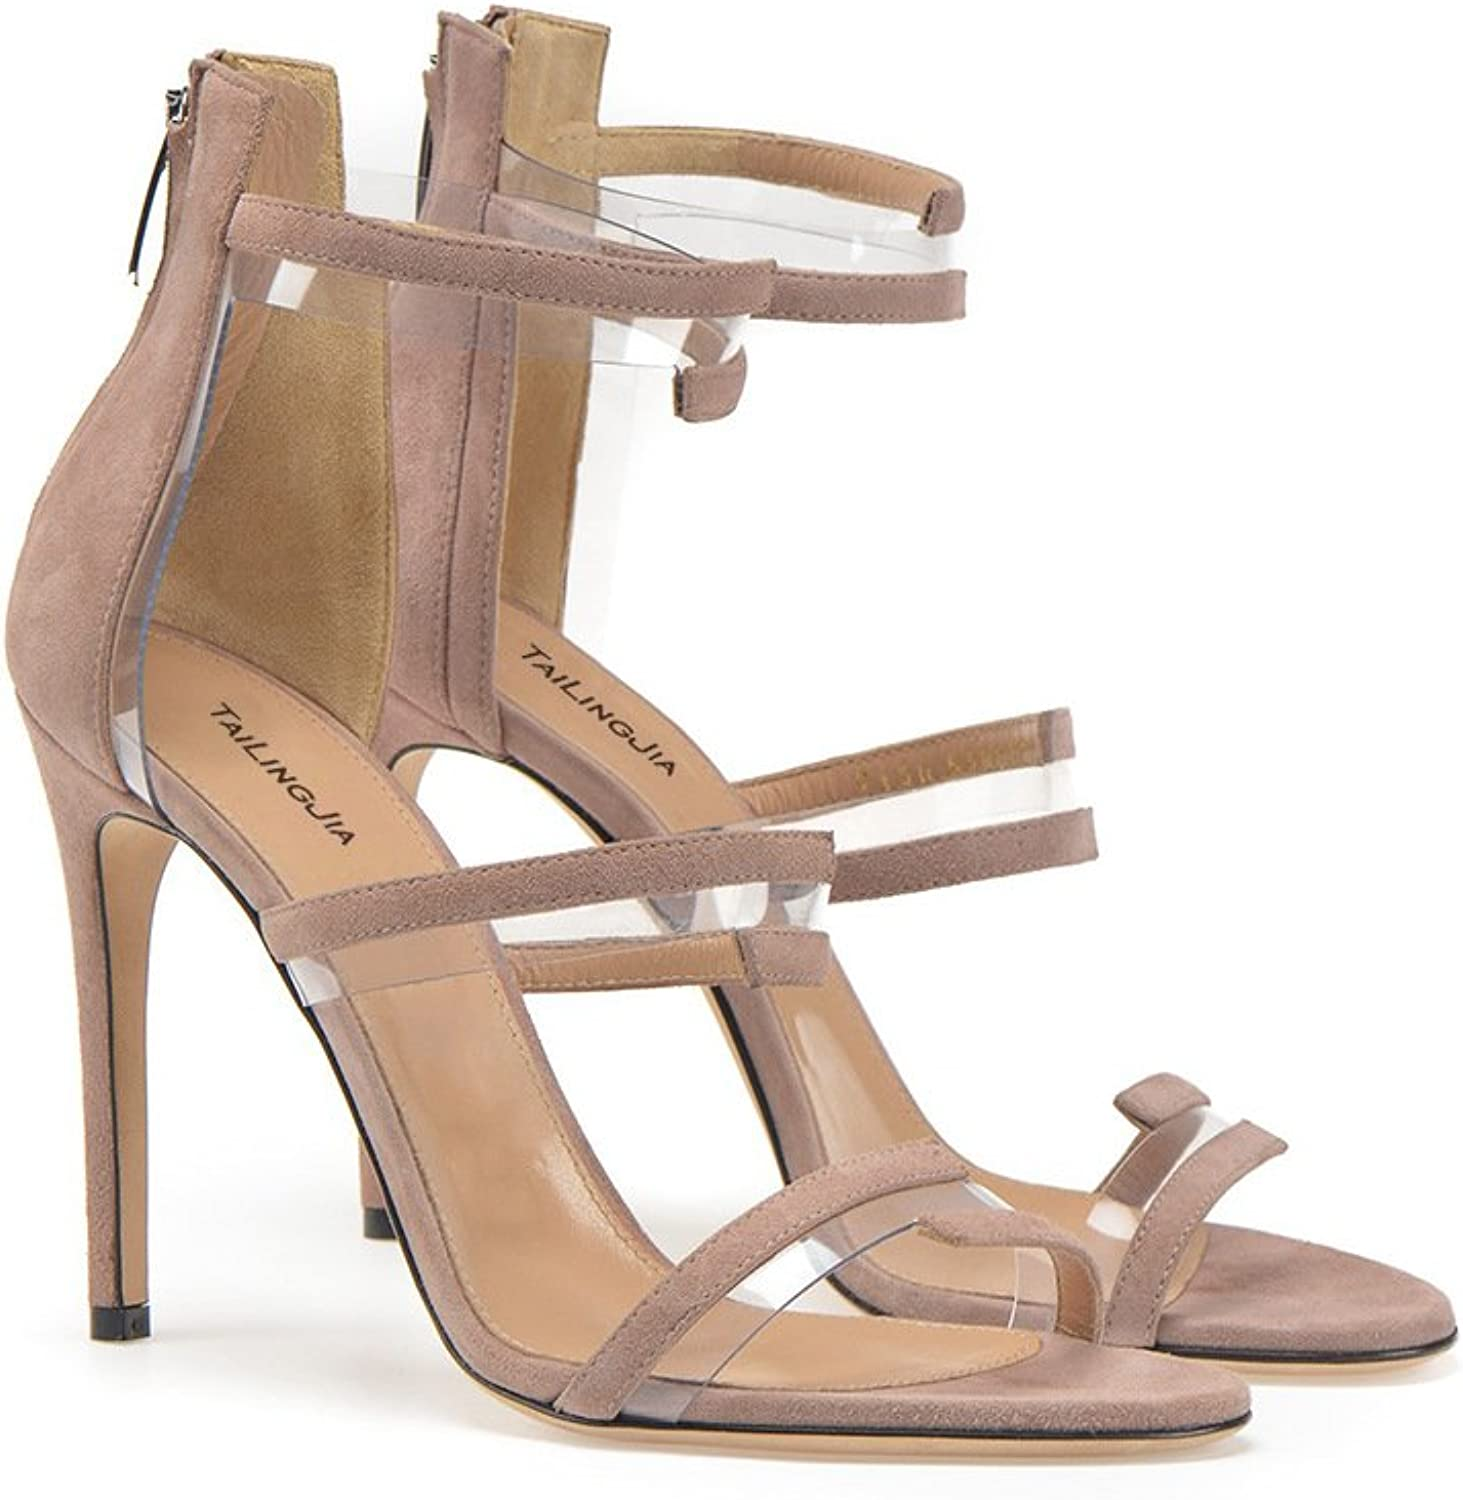 Women's shoes PU Spring Summer Club shoes Gladiator Sandals Stiletto Heel Round Toe Zipper for Wedding Party & Evening Dress